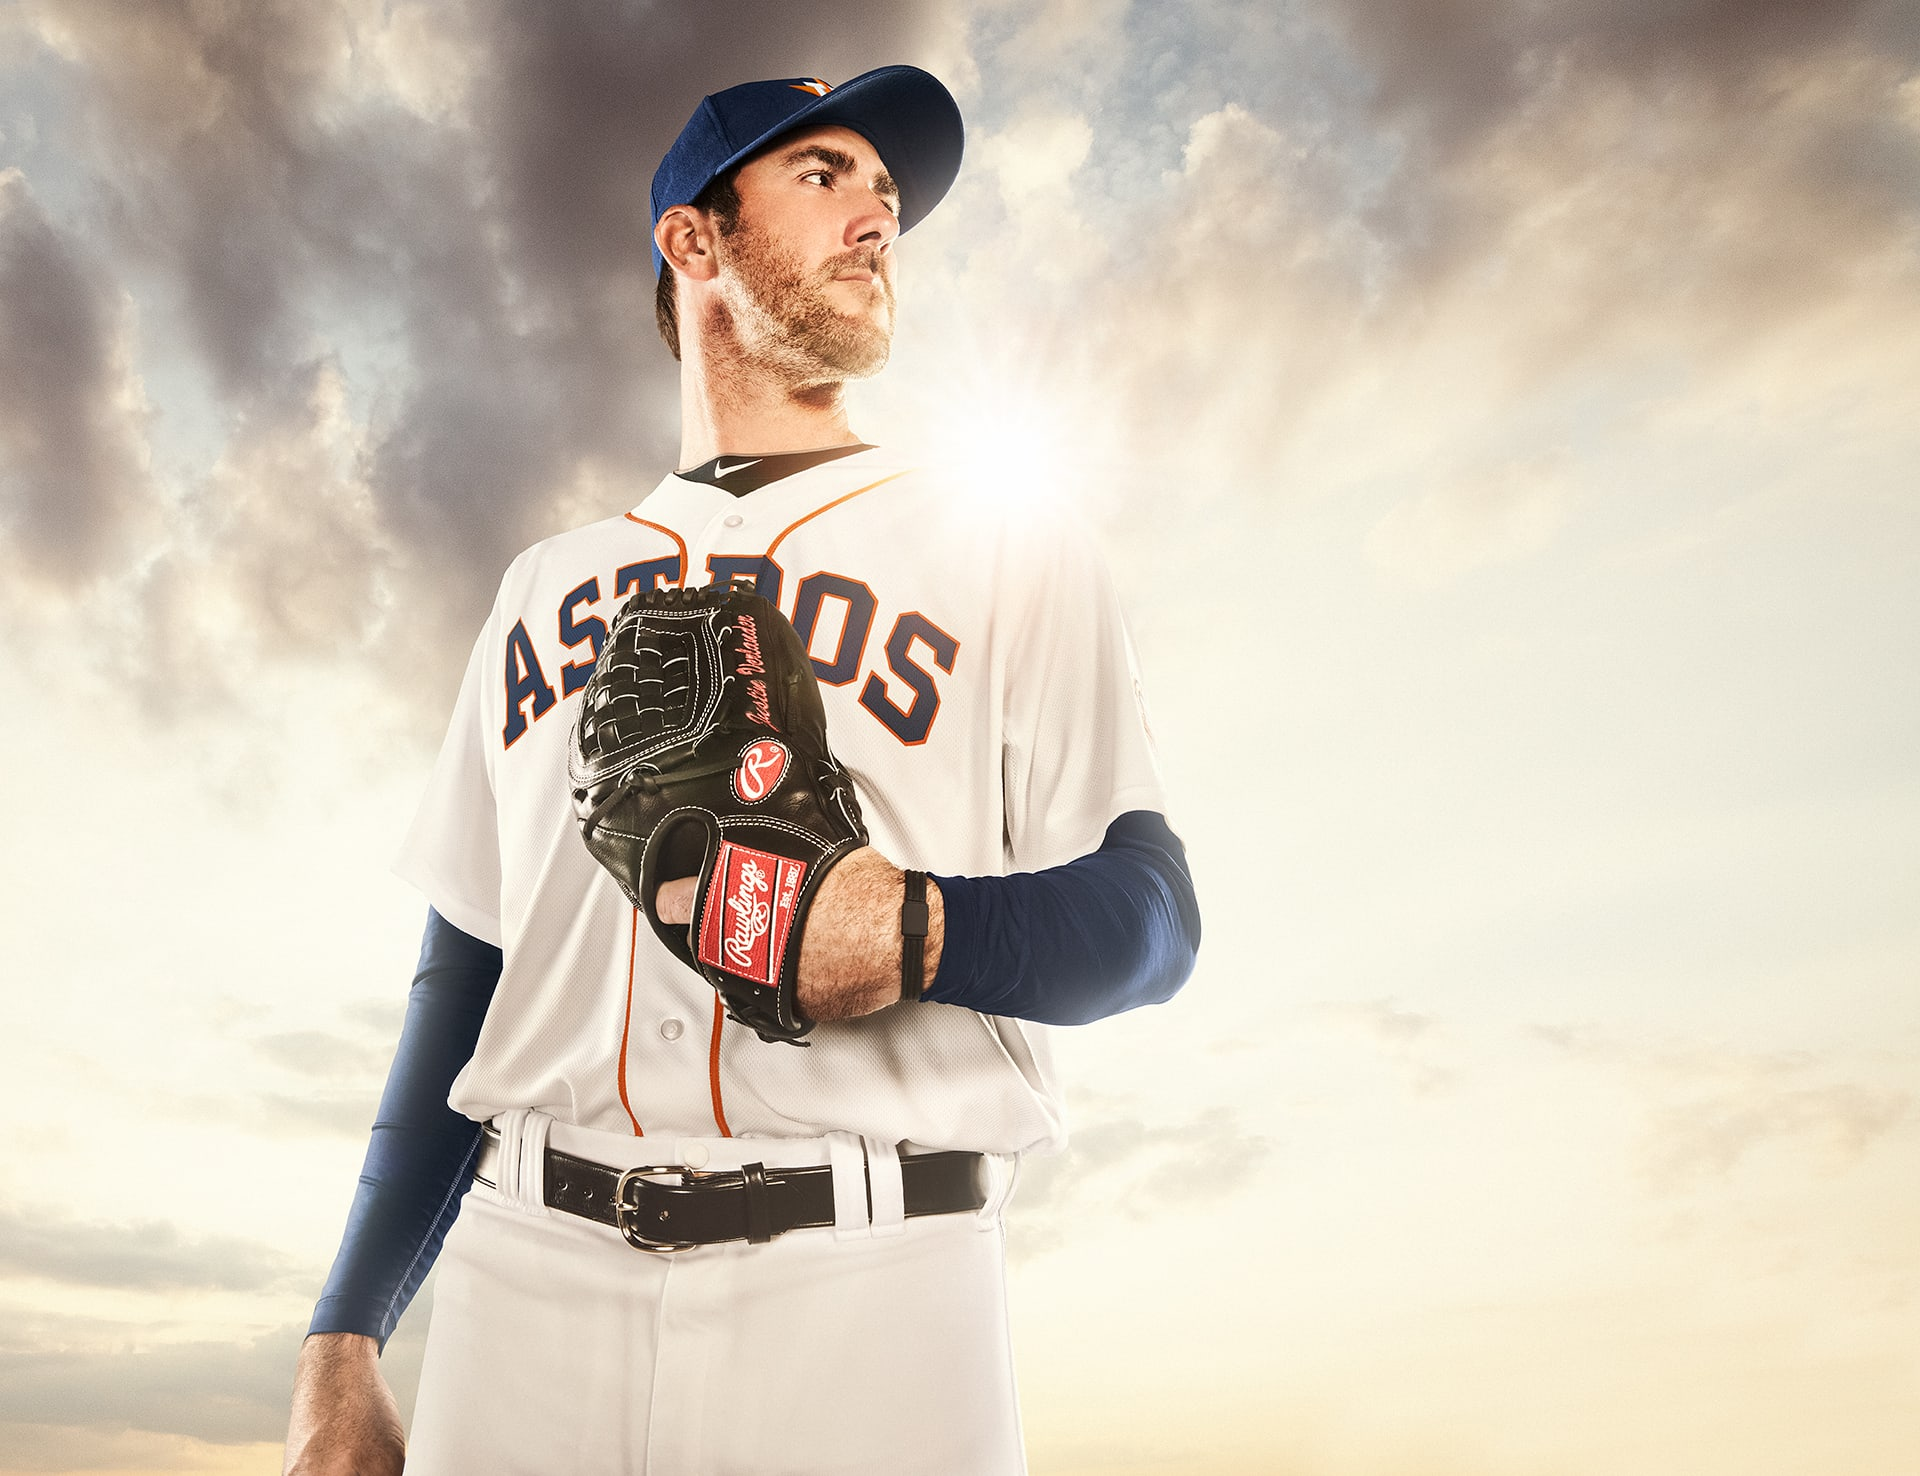 Justin Verlander of the Houston Astros World Series photographed by Blair Bunting